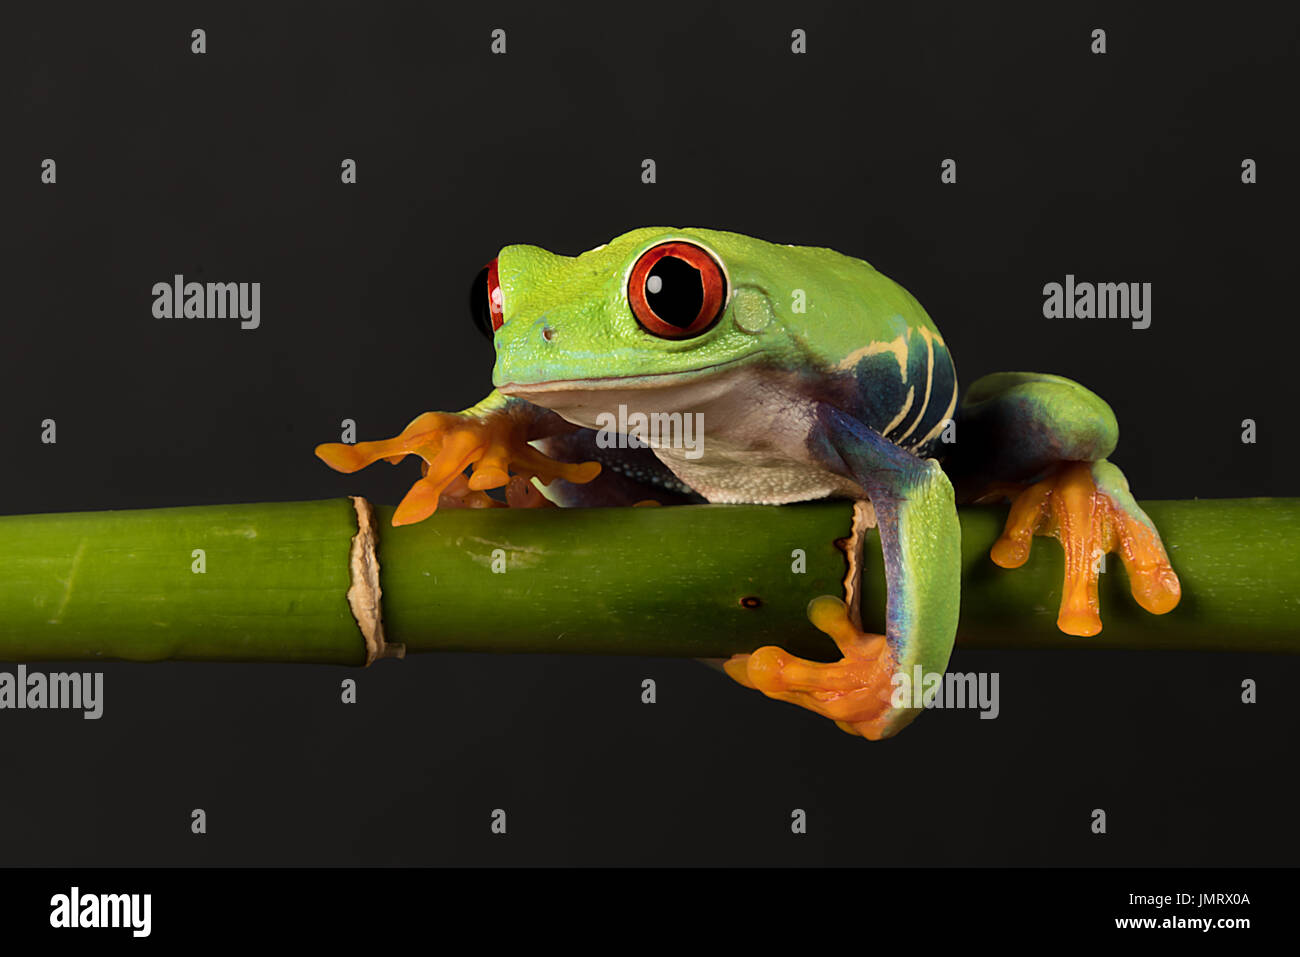 A close photograph of a red eyed tree frog balancing on a bamboo shoot against a black background - Stock Image